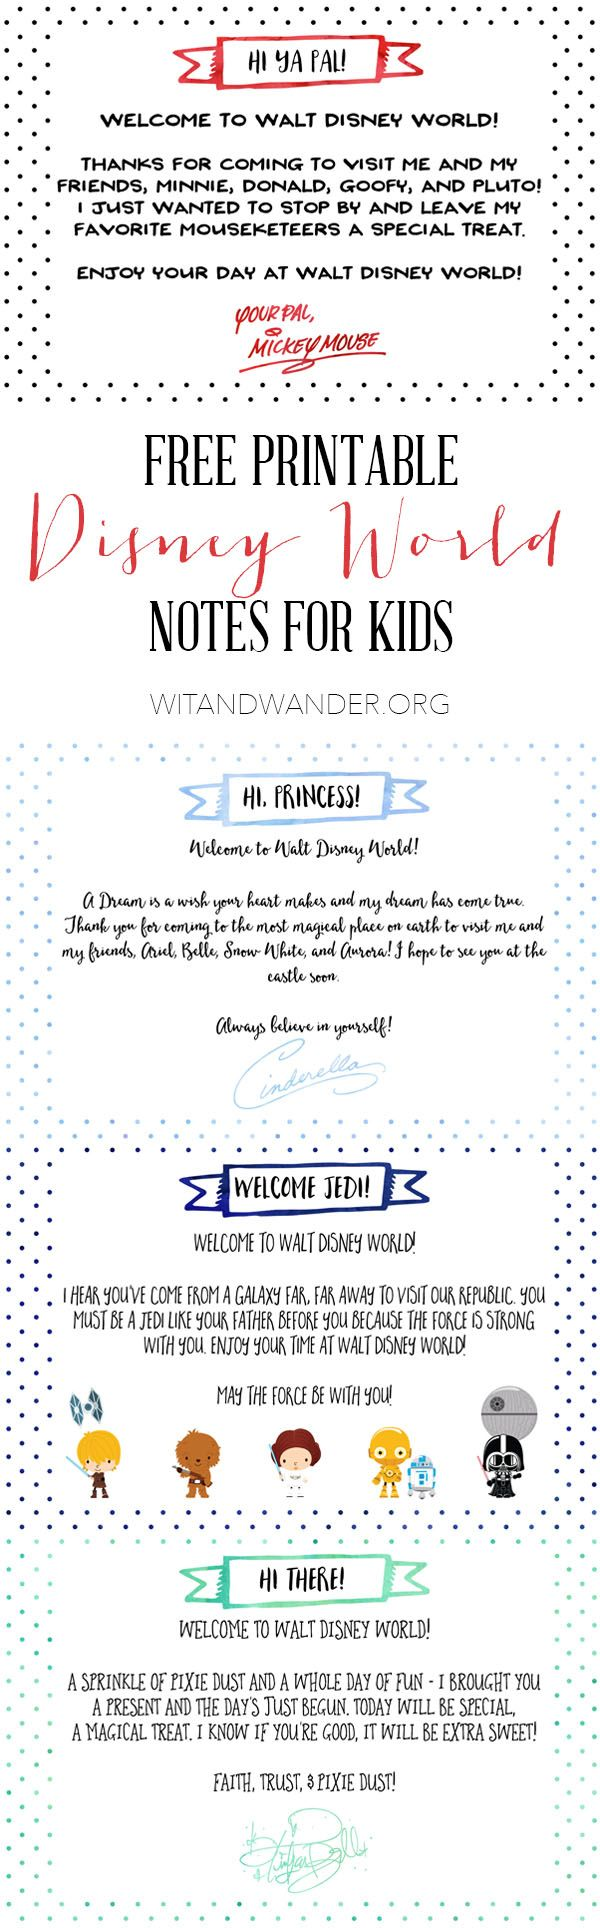 Free Printable Notes from Disney Characters | Tinker Bell Gift Tags - Wit & Wander